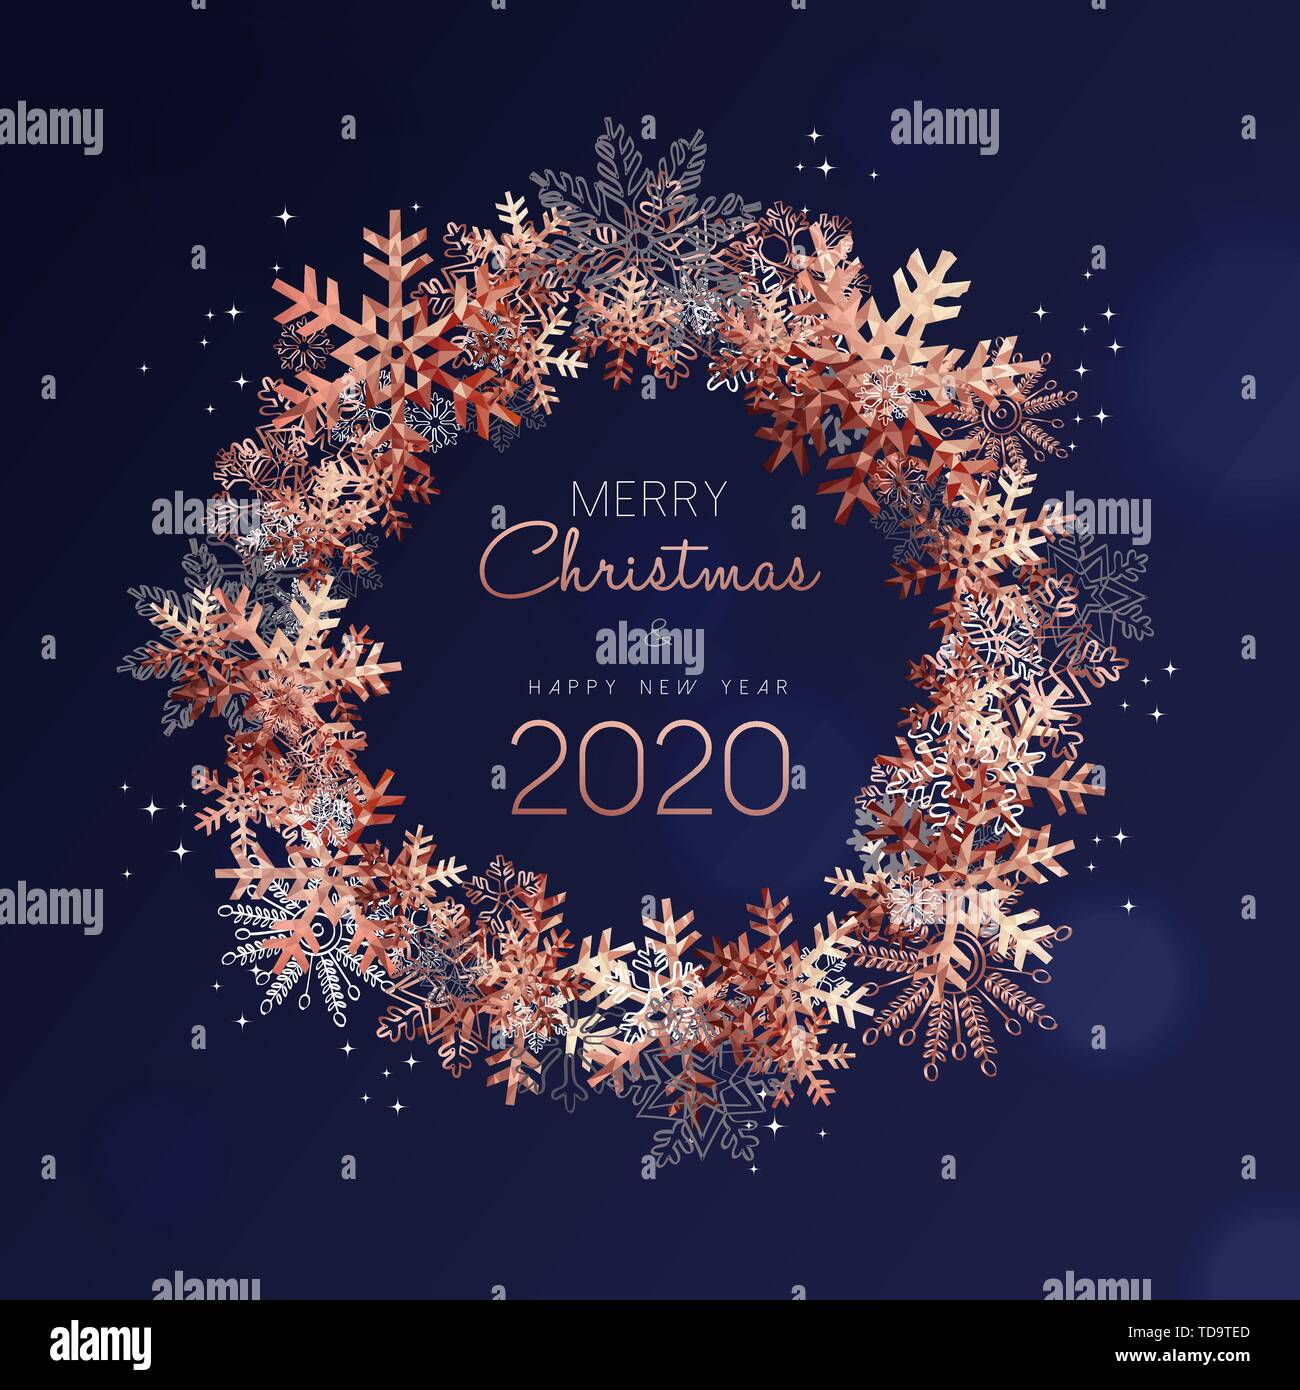 merry christmas and happy new year 2020 greeting card. Black Bedroom Furniture Sets. Home Design Ideas